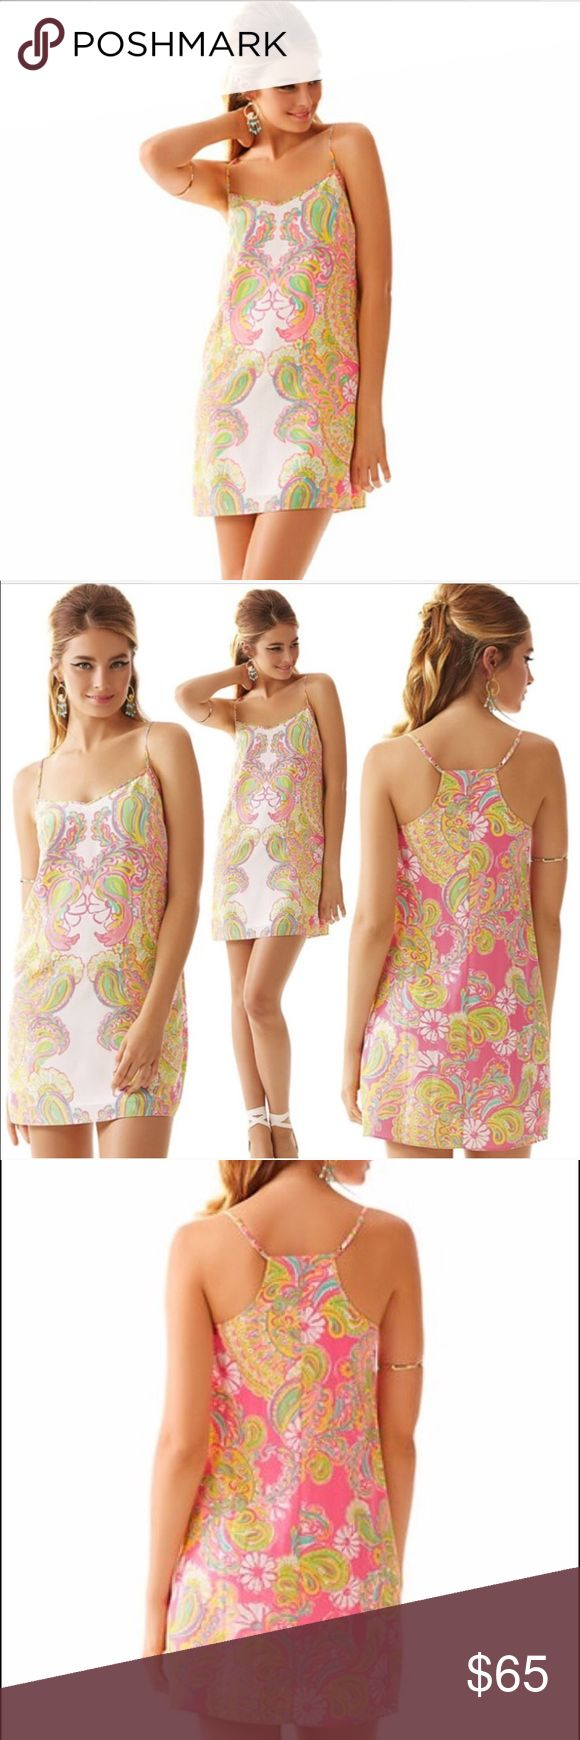 Lily Pulitzer dusk dress doubl trouble💕💓🌸 Lily Pulitzer double trouble. Xxs. I would say it fits more like xs than xxs. The pattern is so beautiful. Super light, flowy. It can be wear by pool as swim cover I would say.  Bought it from posh as new without tag. I tried on in the house. Never wore outside. Original price 198.00. Ladies get ready for summer😍💕 Lilly Pulitzer Dresses Midi